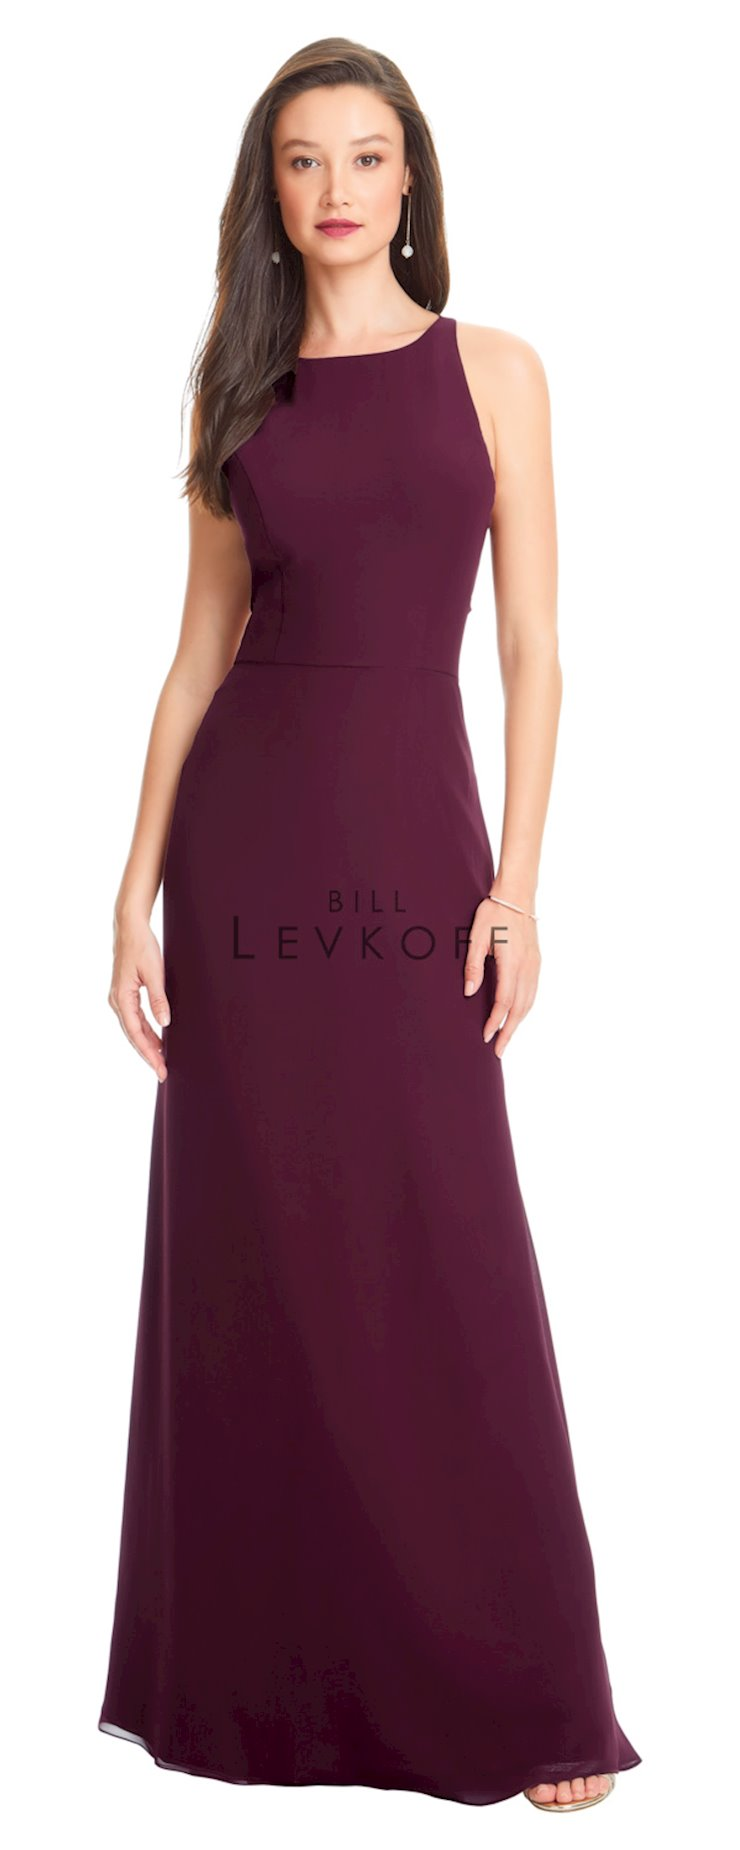 Bill Levkoff Style #1563 Image